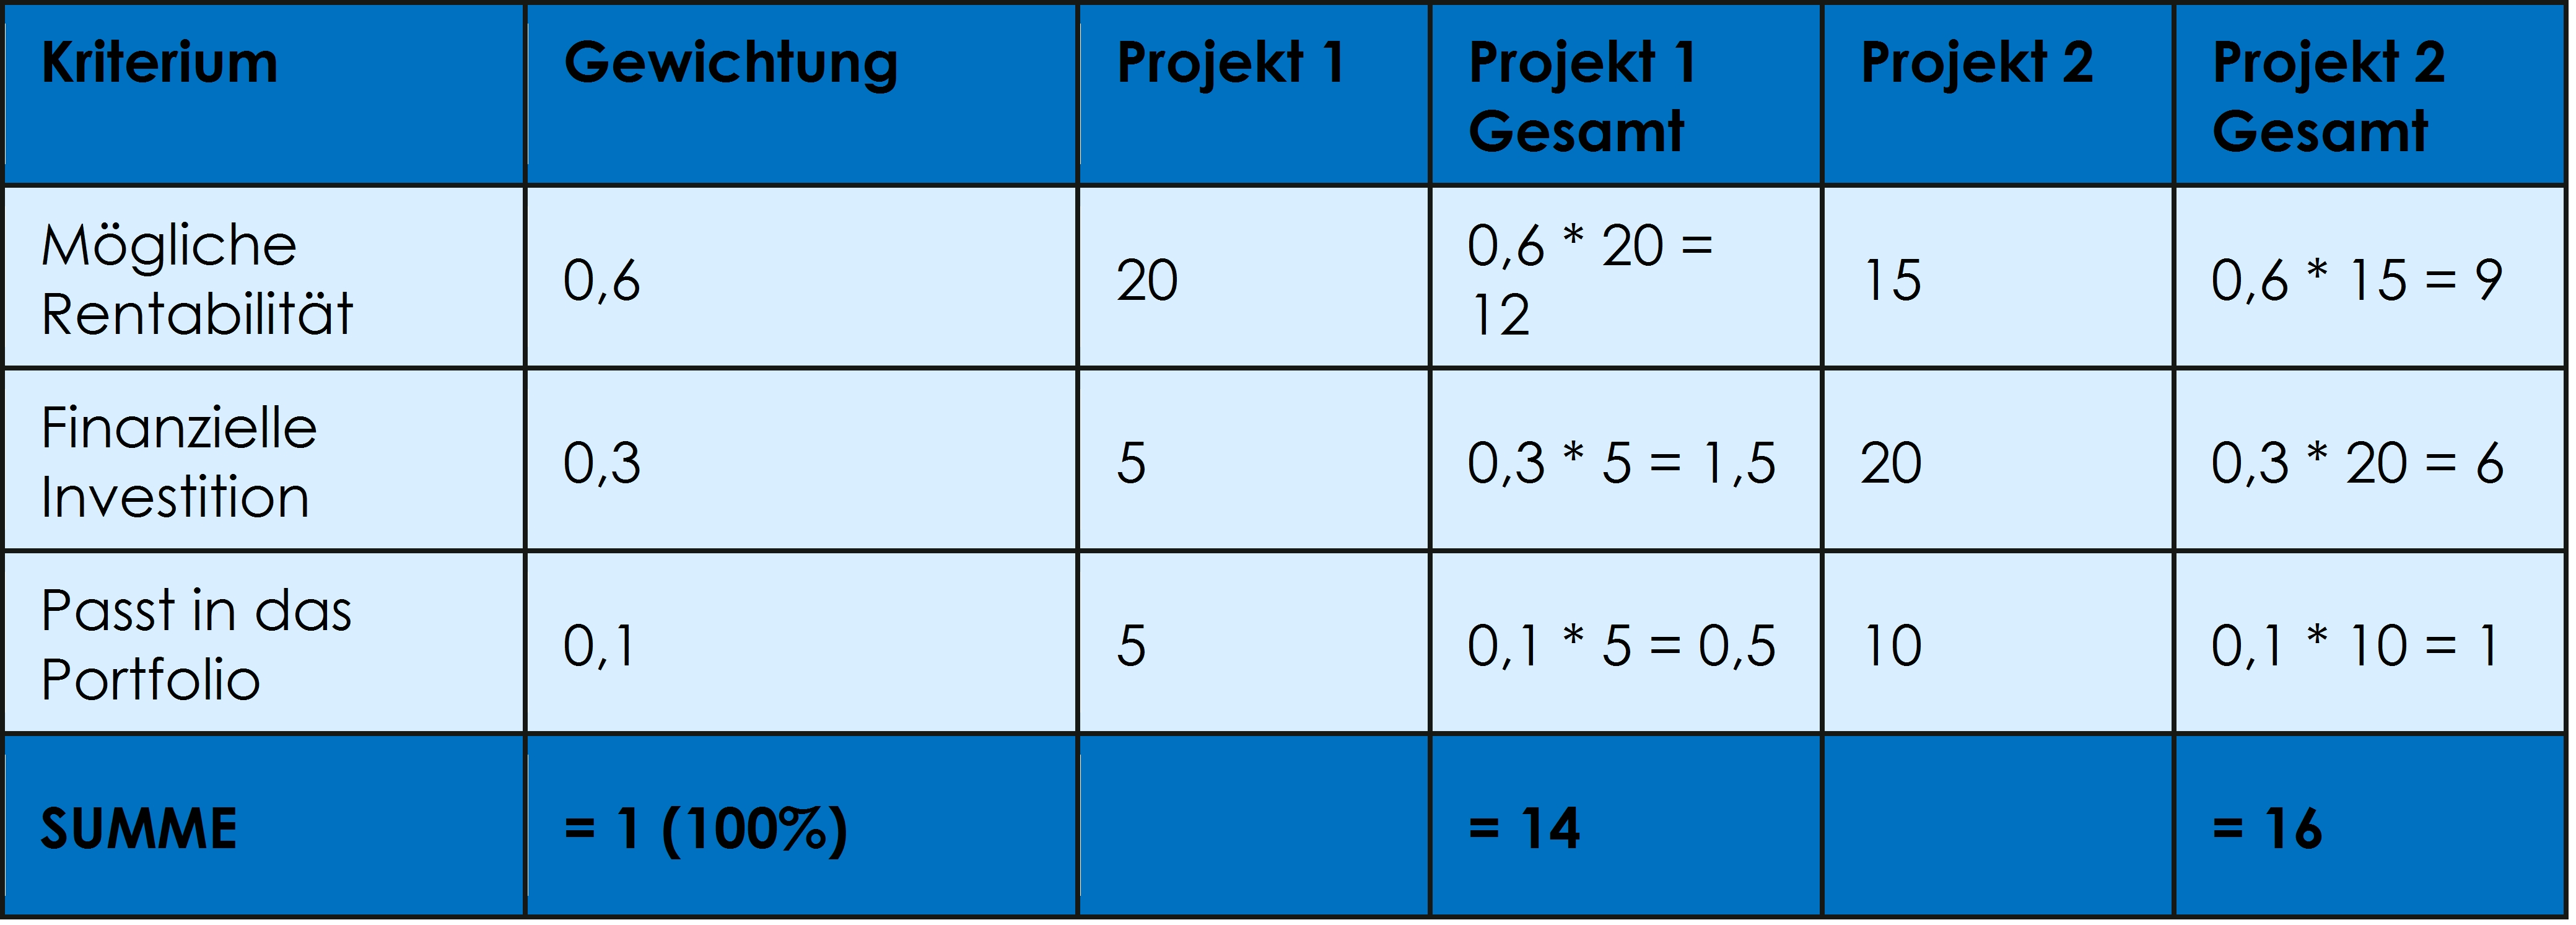 Six Sigma College Düsseldorf - Weighted Scoring Model